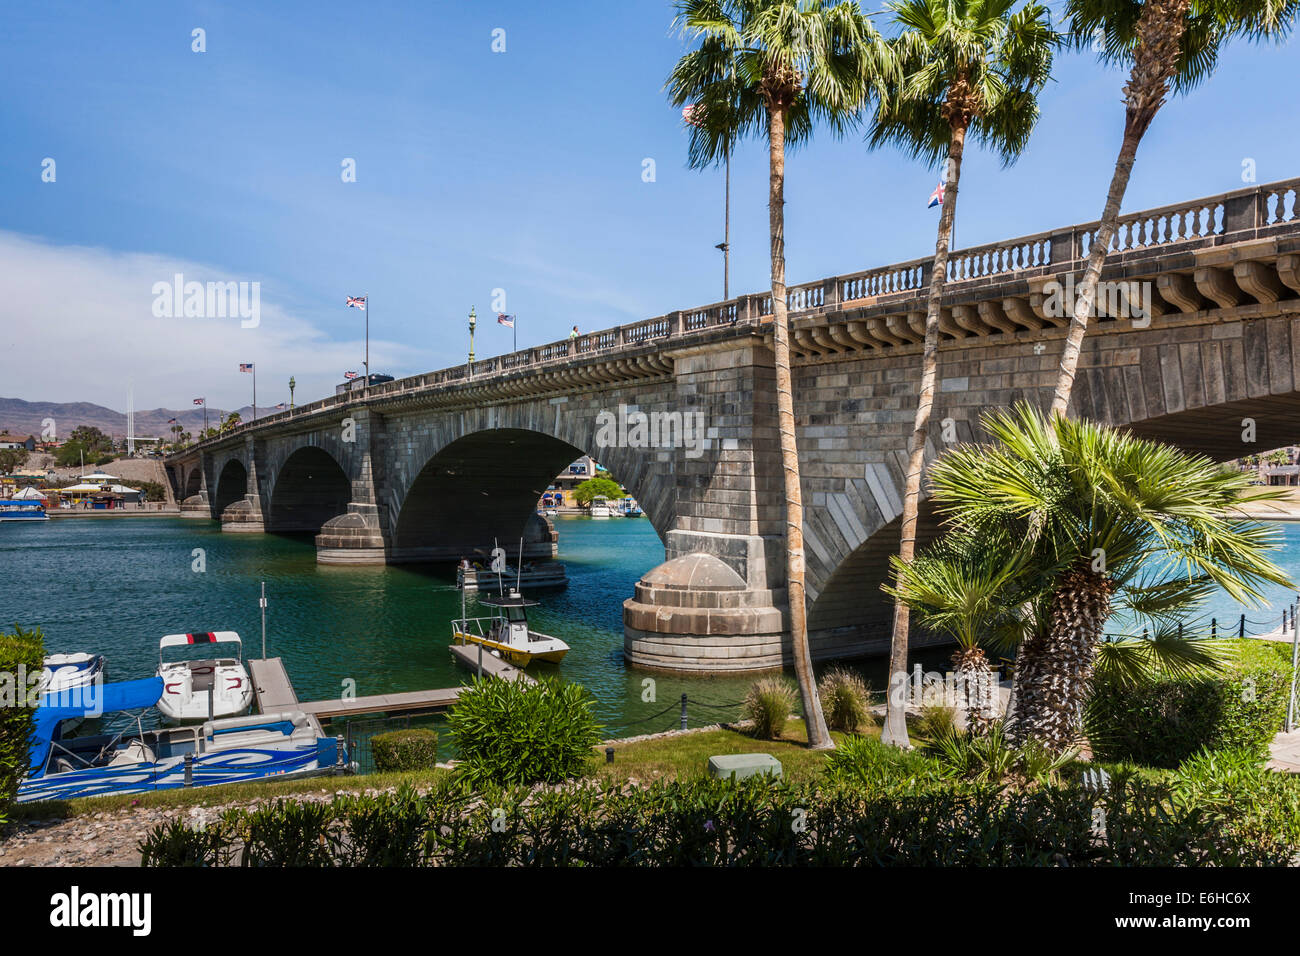 ups lake havasu city arizona